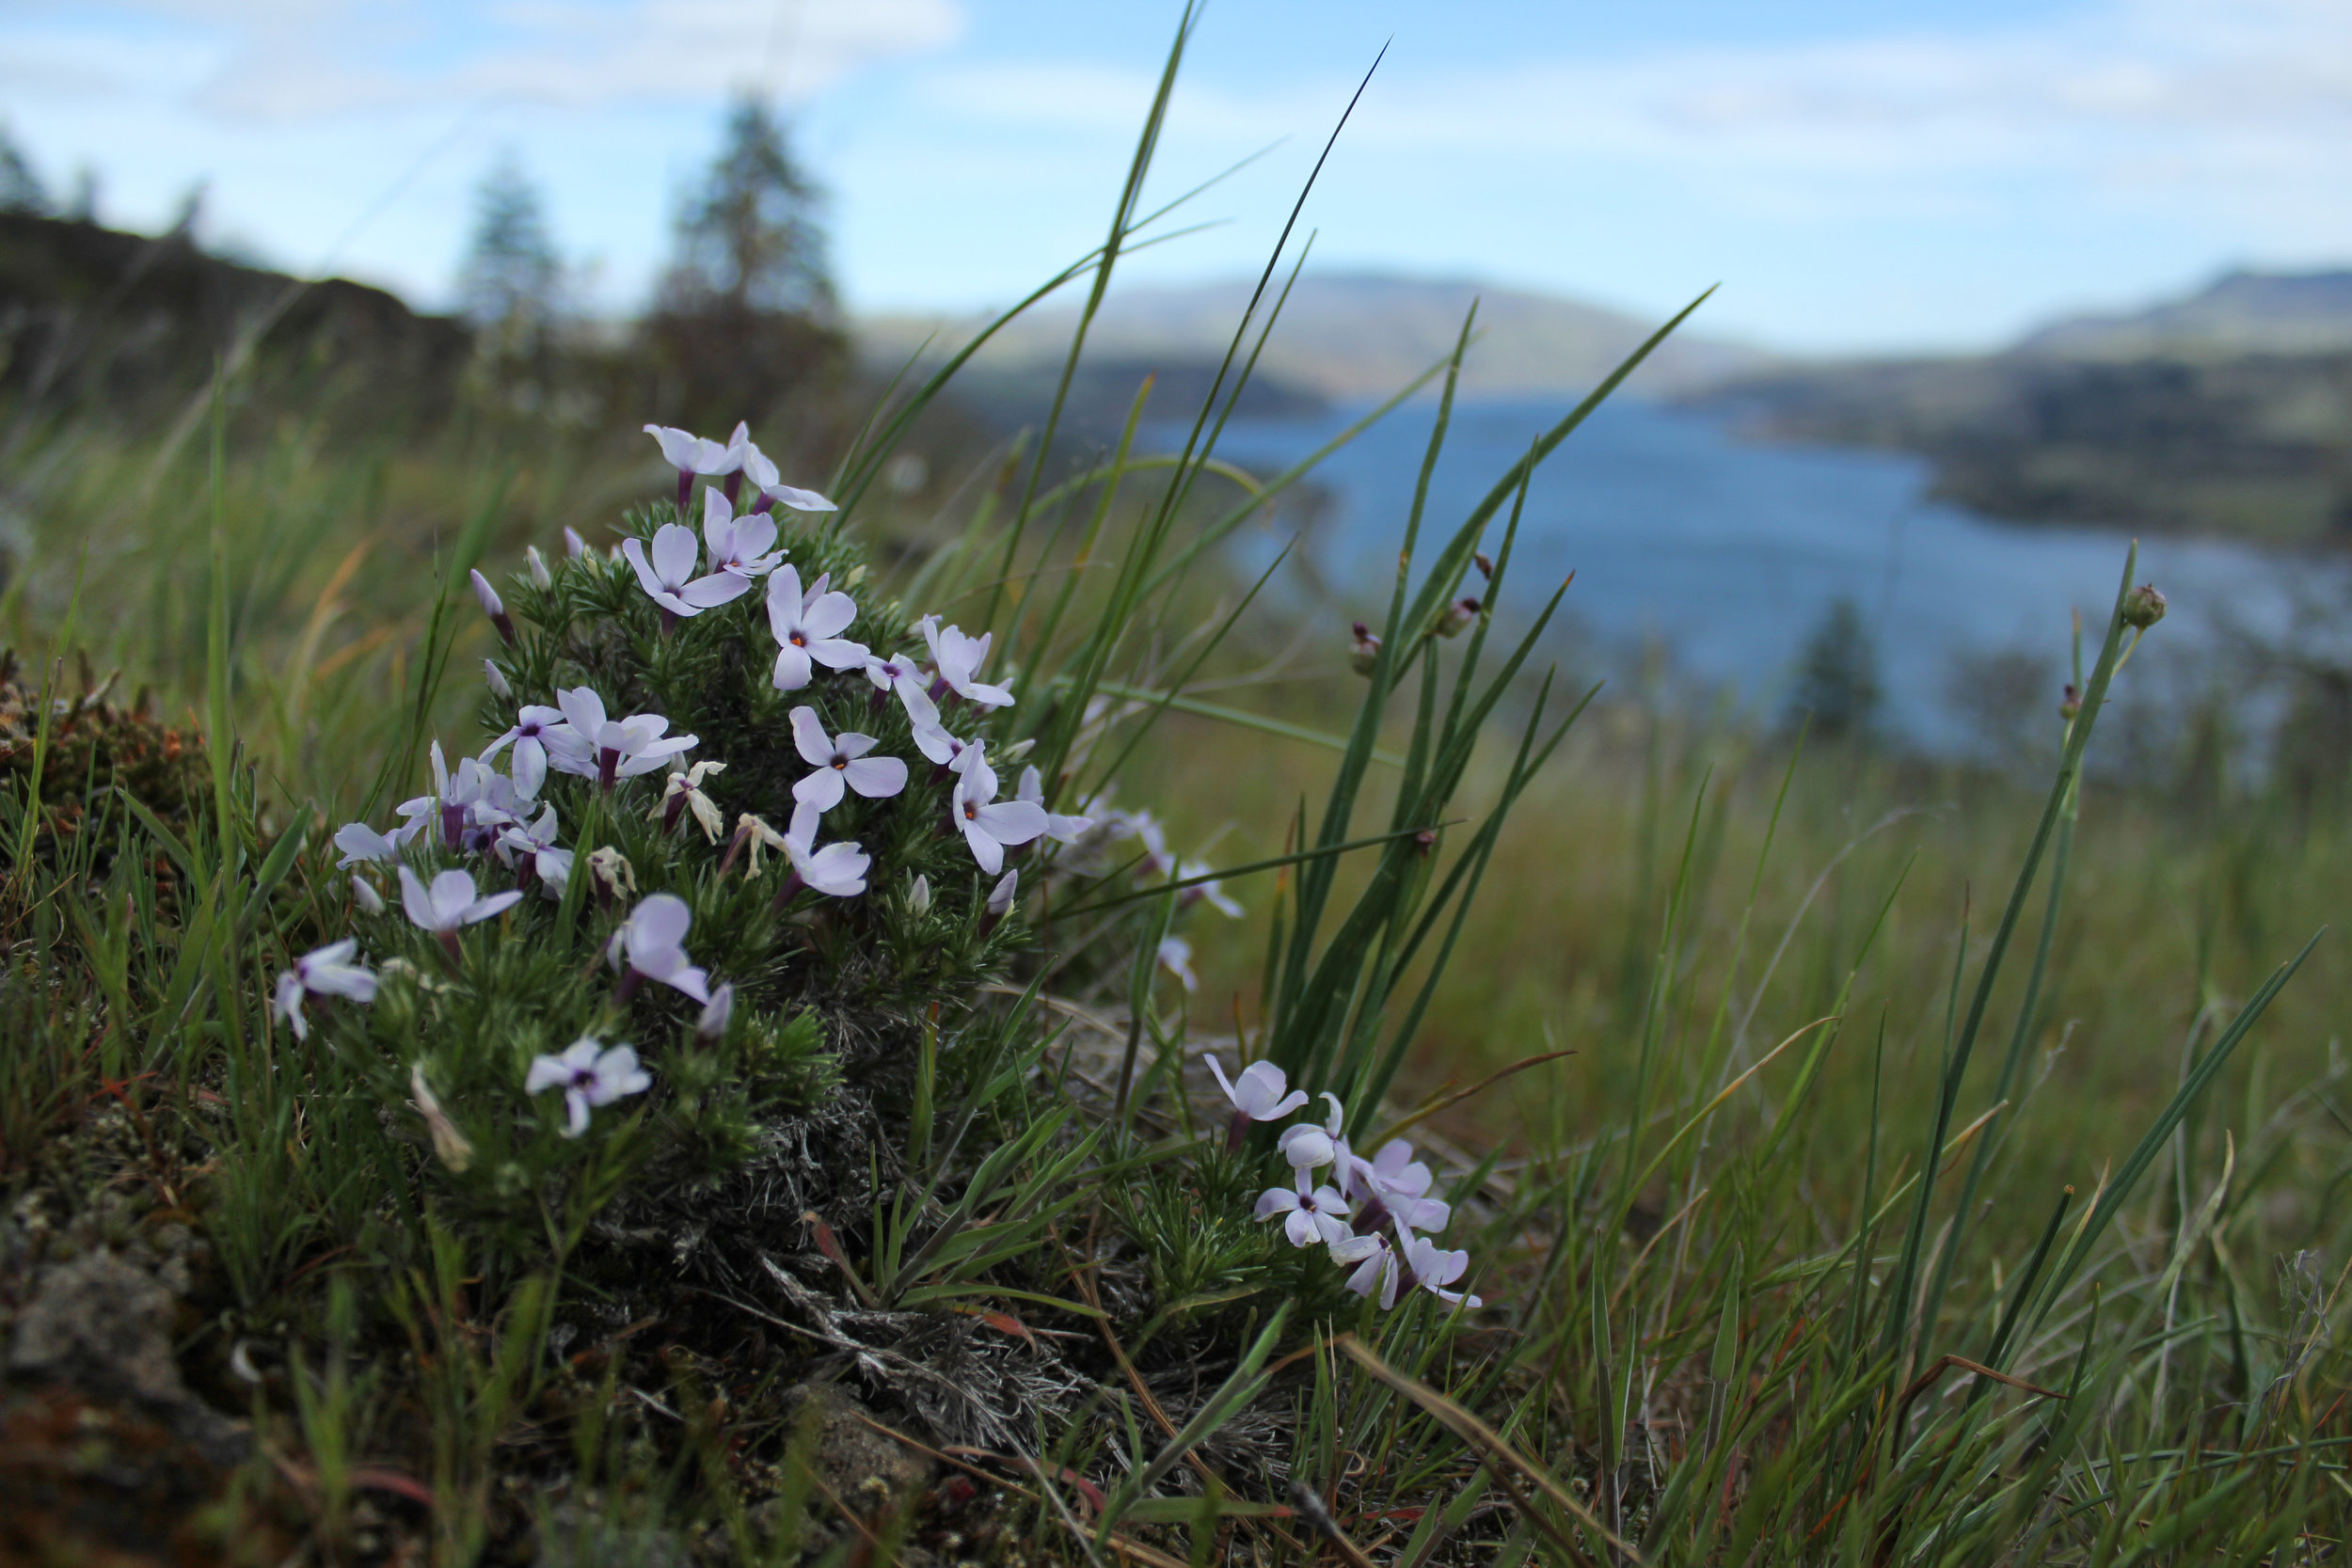 This, I think, is a wildflower called Hood's phlox, phlox hoodii. It's one of the earliest wildflowers to bloom in the Gorge.